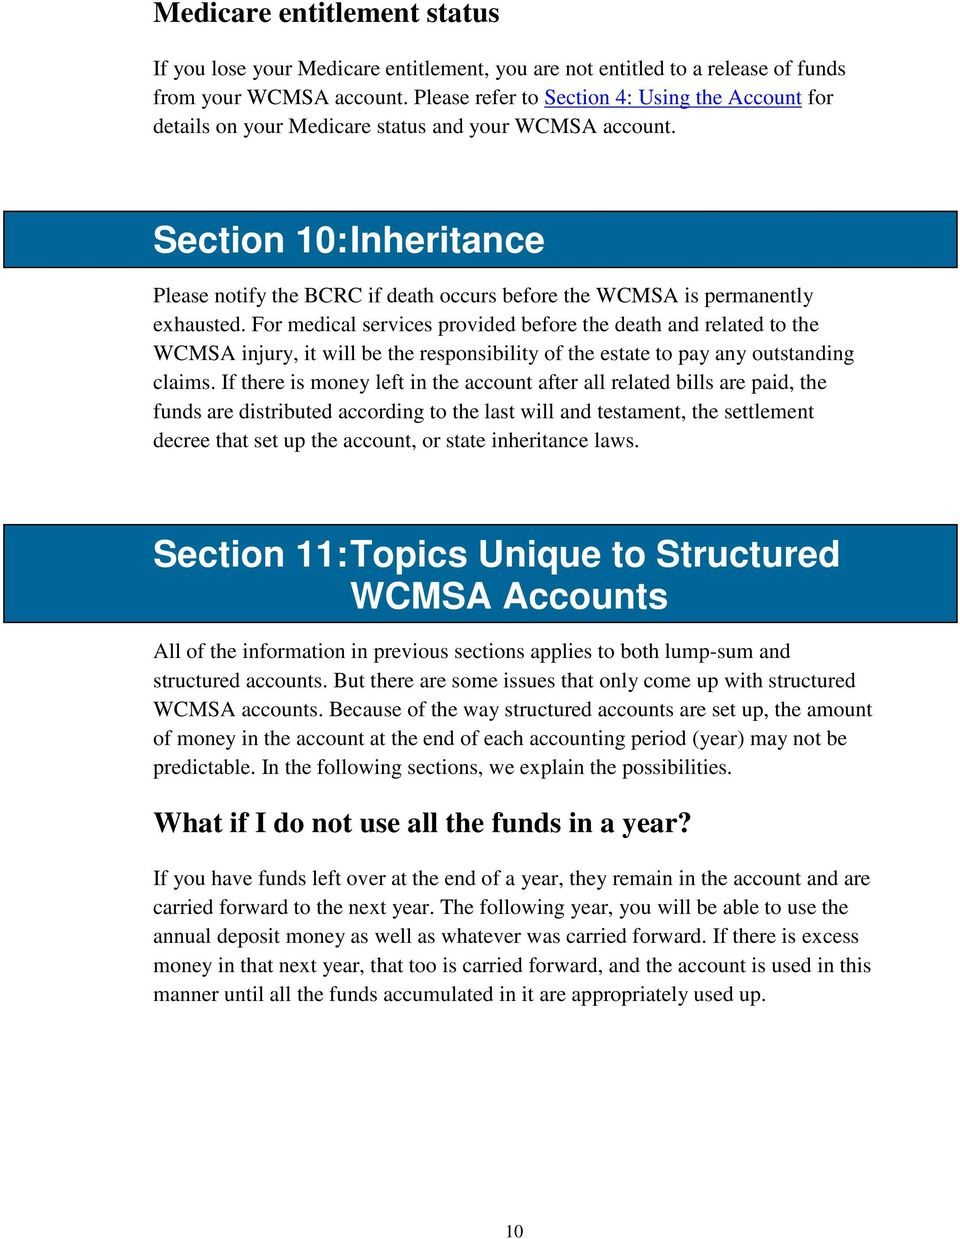 Section 10: Inheritance Please notify the BCRC if death occurs before the WCMSA is permanently exhausted.